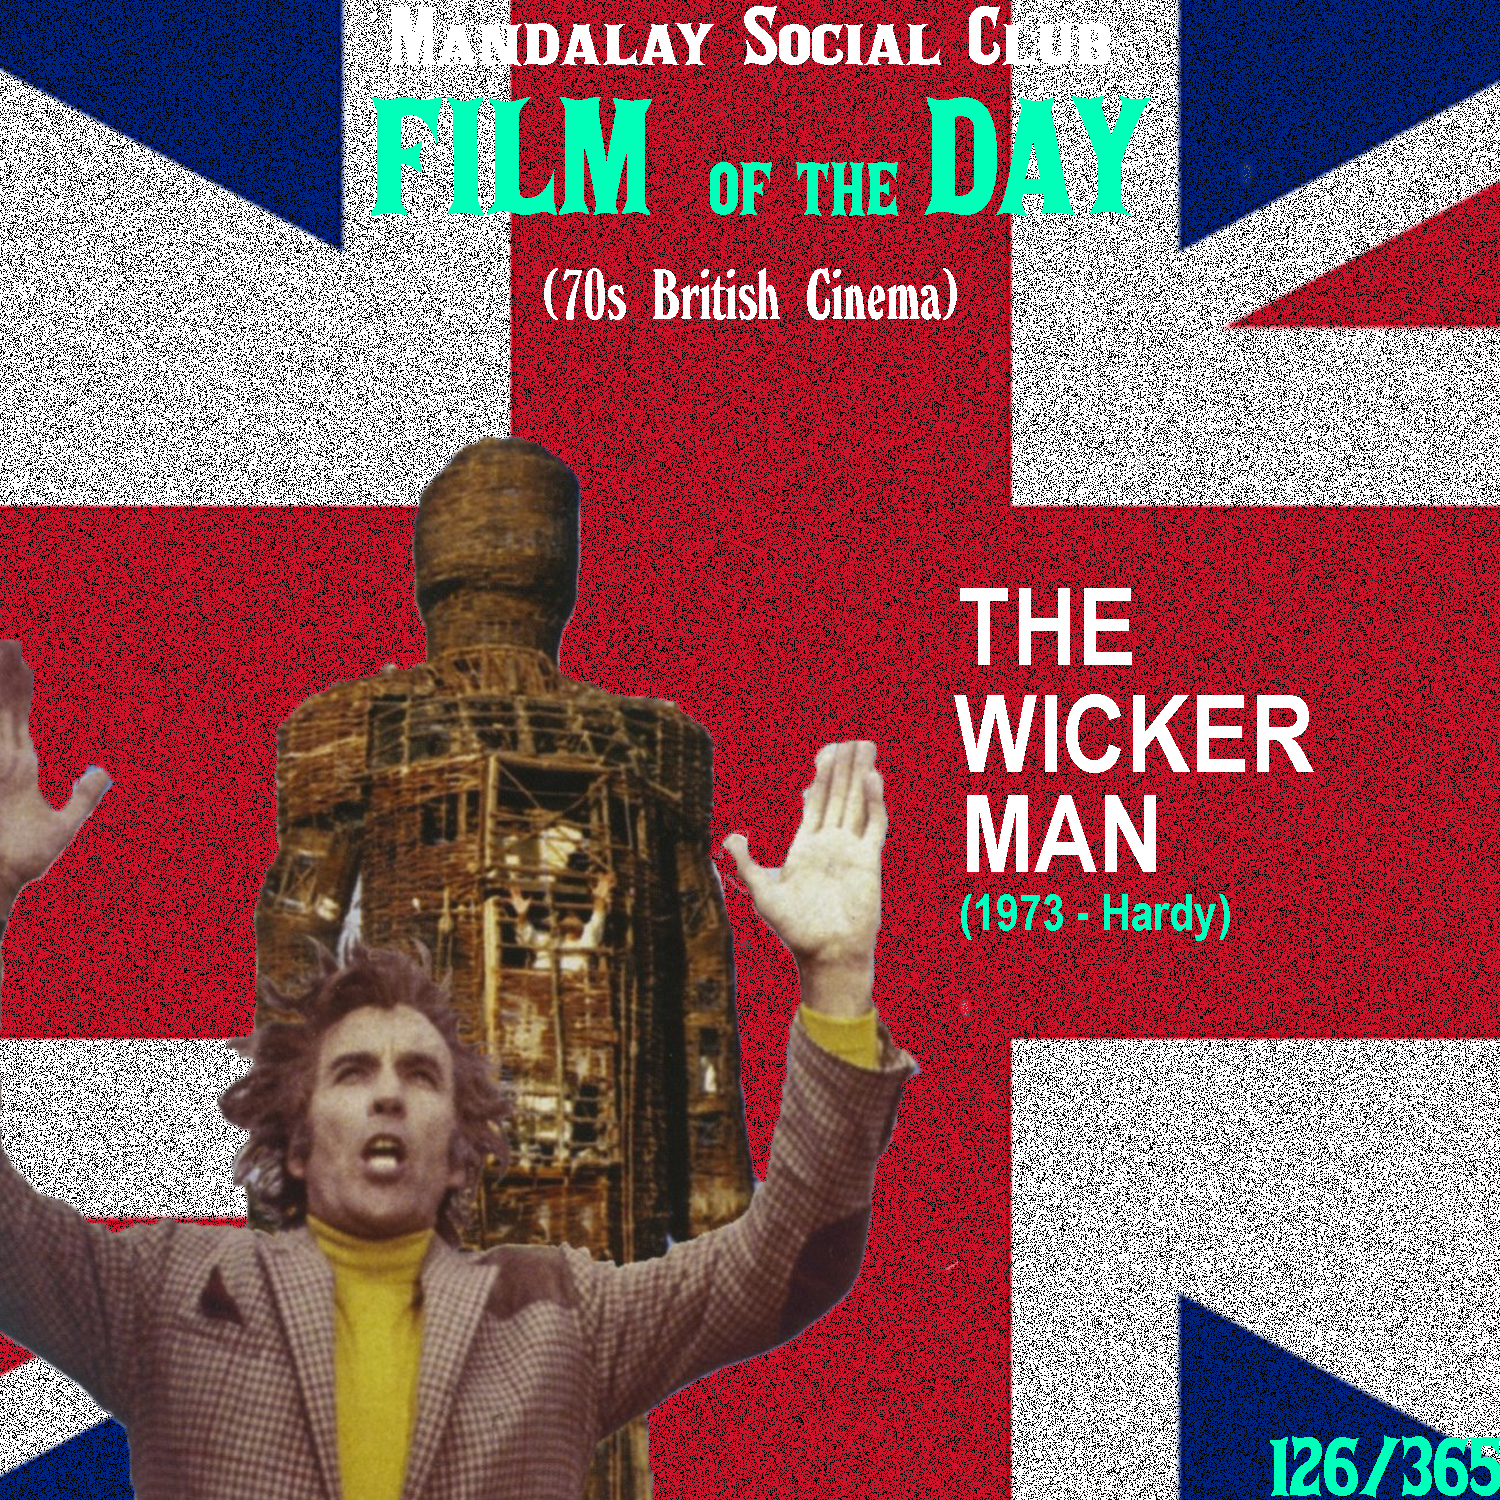 THE WICKER MAN     (dir. Robin Hardy)   This 1973 British horror film is unlike many other horror films I've ever come across.  Hardy's film stars Edward Woodward as Sgt. Howie, a mainland officer who's travelled to the Scottish island of Summerisle to search for a missing girl that was reported to him. While there, he notices that the locals are a little off and the whole island follows the sacred traditions of a Celtic pagan religion. This conflict with Sgt. Howie's strong Christian morals creates a striking divide in Howie being able to successfully carry out this search for the missing little girl.   The Wicker Man  was made in the attempt to really revive British horror cinema and it actually performed pretty poorly at the box office. However, time was very kind to this film and it was noted and praised for it's unique take on the horror genre. Hardy implements supernatural horror without anything supernatural having to take place and creates a stunning story about sexual guilt, repression, and how religion is a driving force behind all sexual aggravations in society.  Now, when searching for this film don't think you can put on the 2006 remake with Nic Cage and expect to feel and experience the same thing viewers of the original do… It's a legit steaming pile of shit.    5/5     WATCH: iTunes, Putlocker